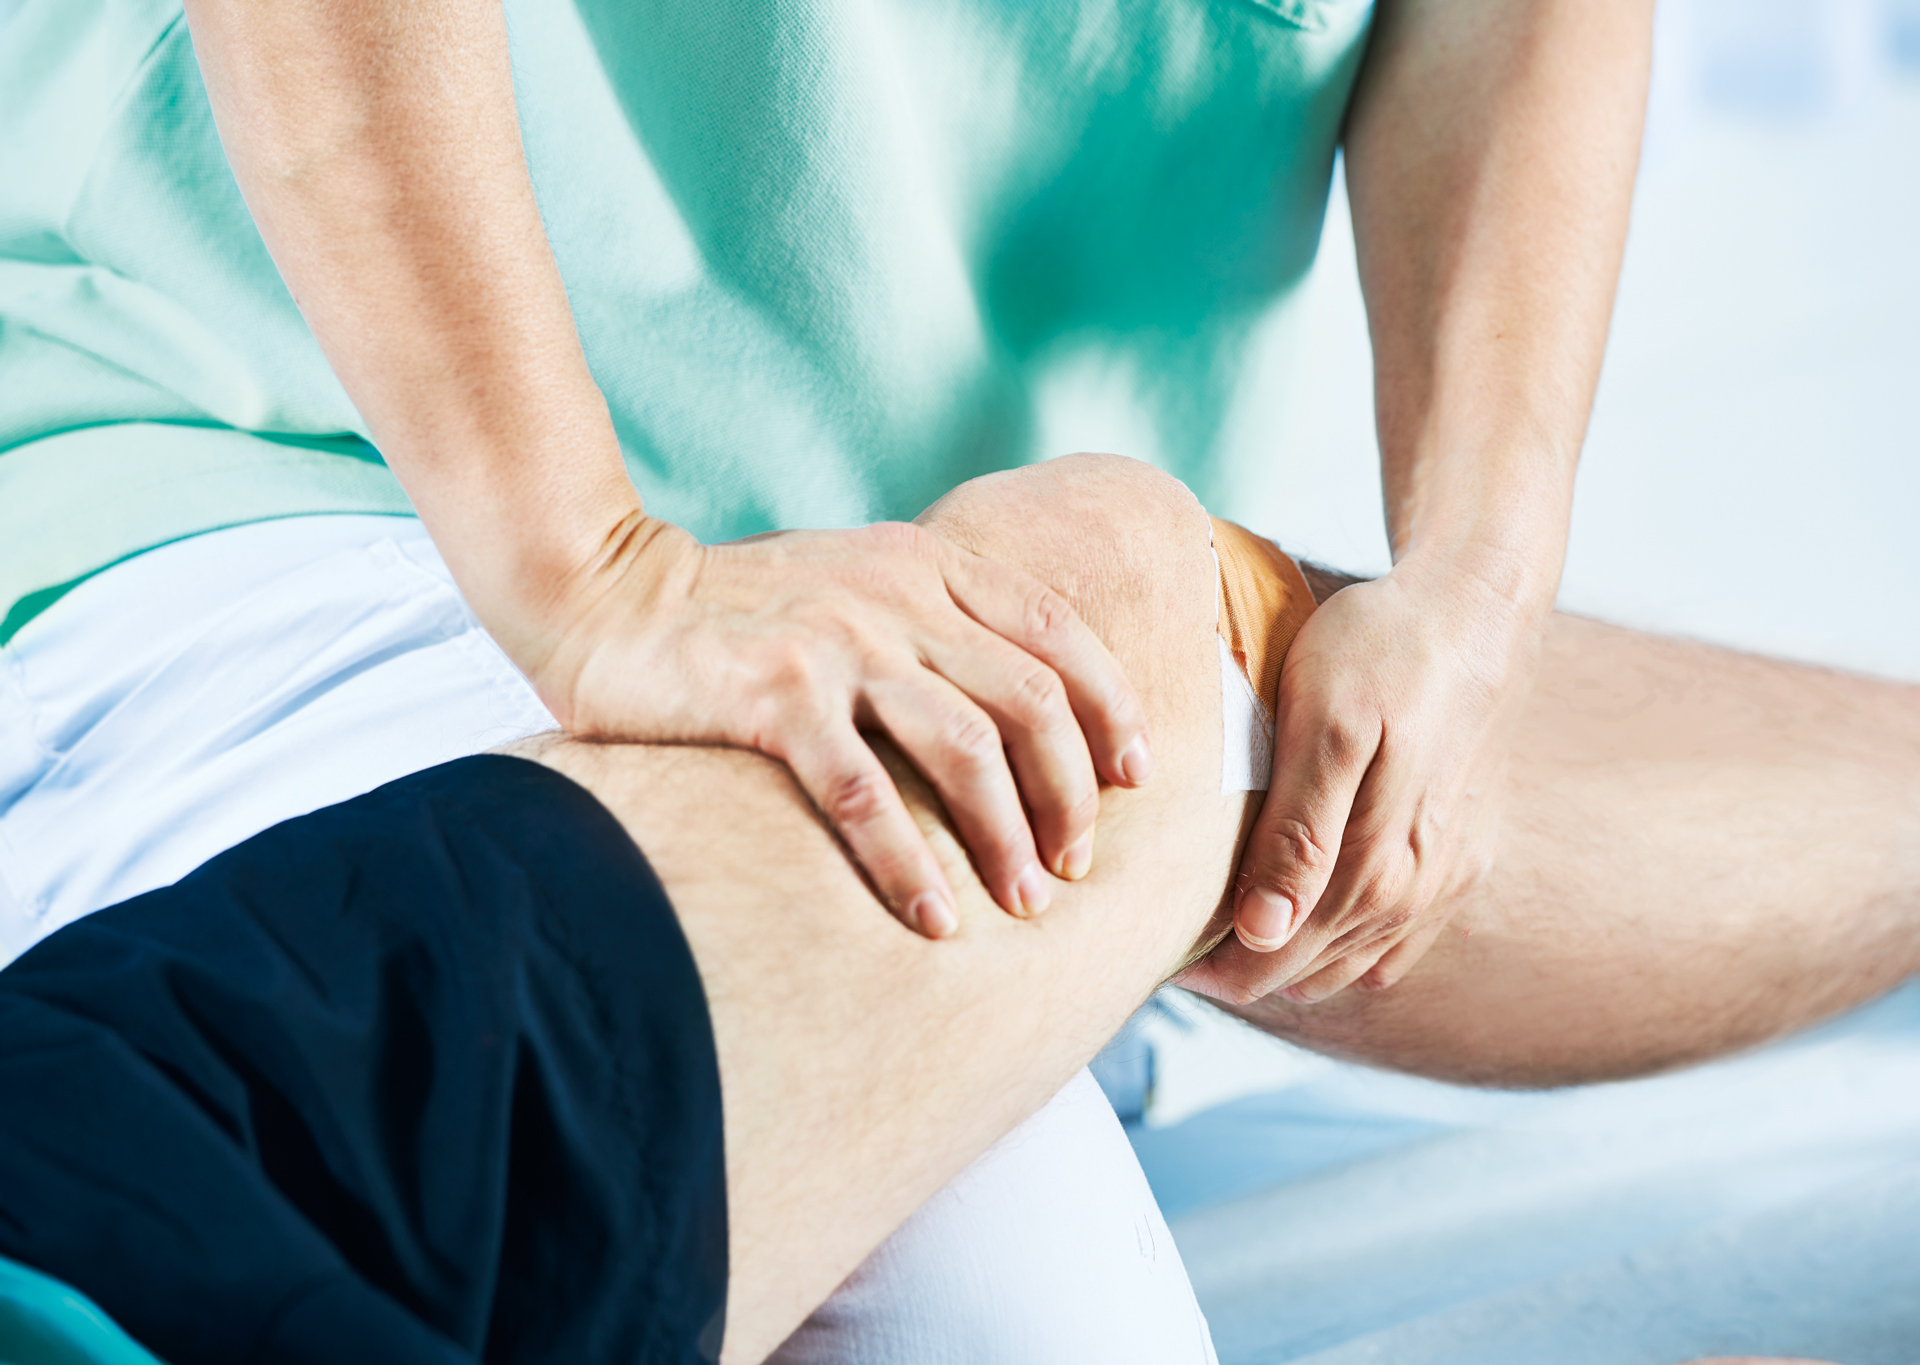 Physiotherapeutin behandelt Knie eines Patienten